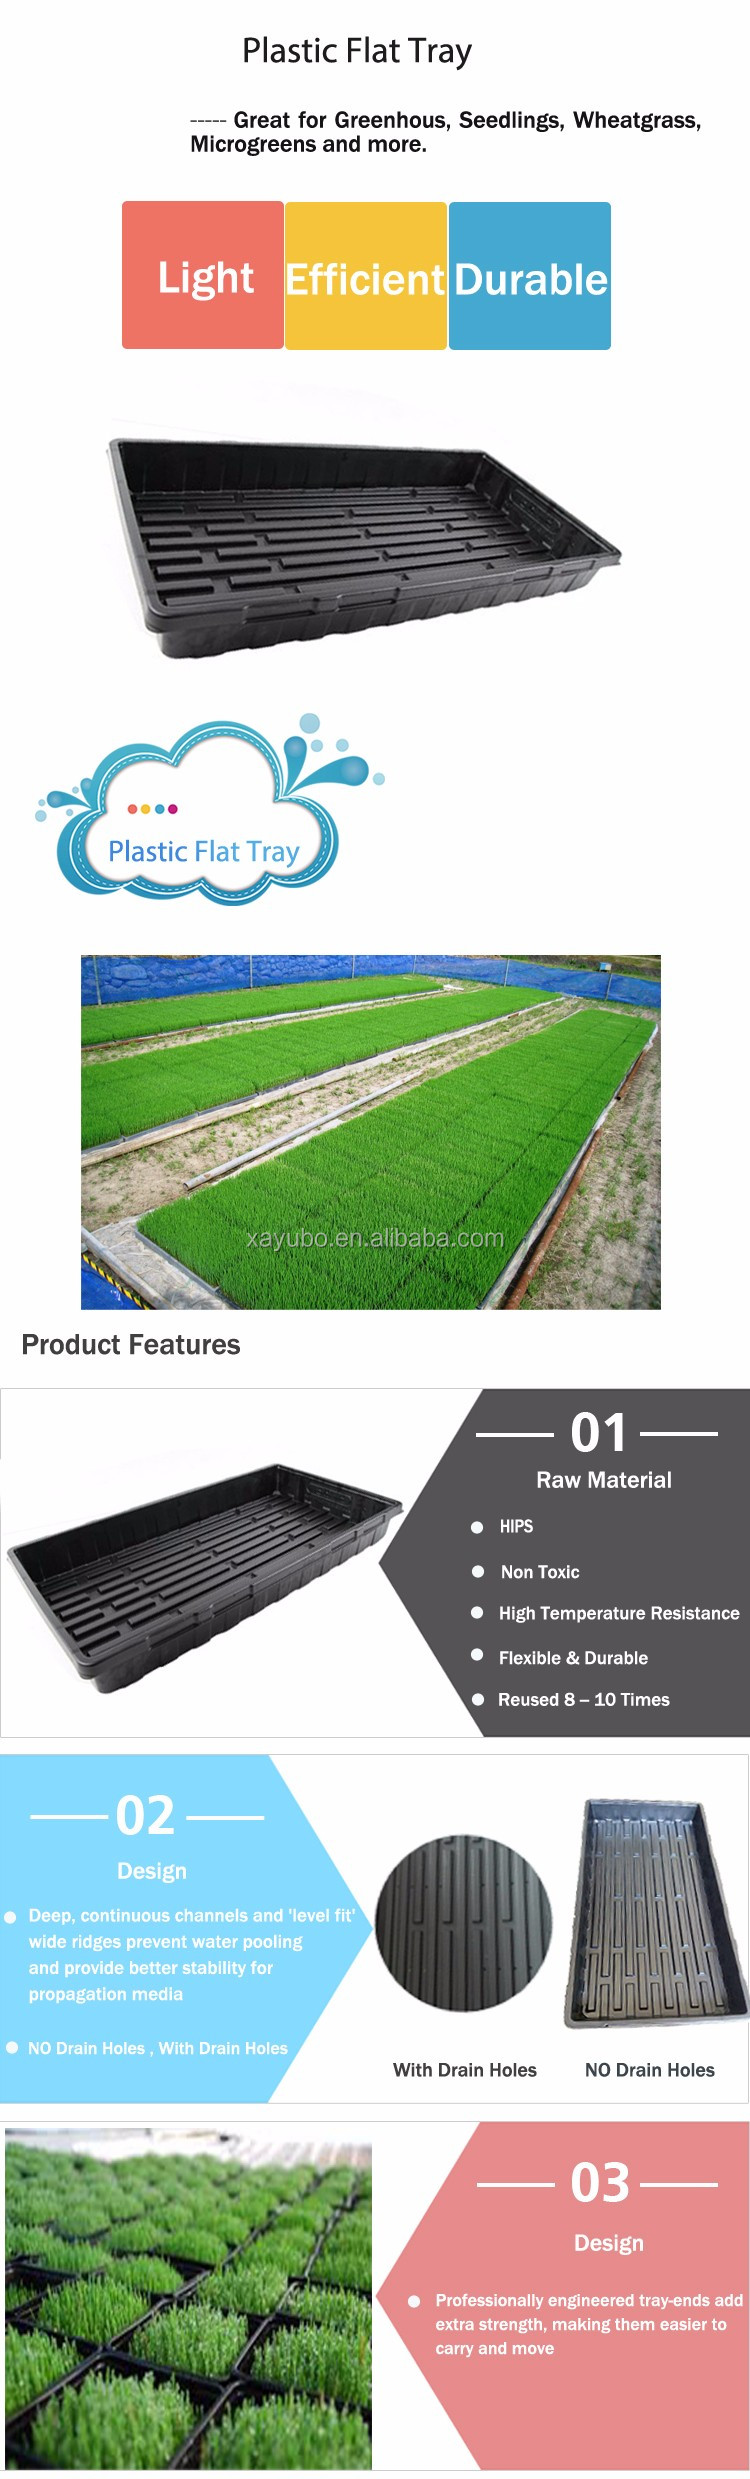 Hot sale Good Quality 20*10 inch Plastic Flat tray For Greenhouse